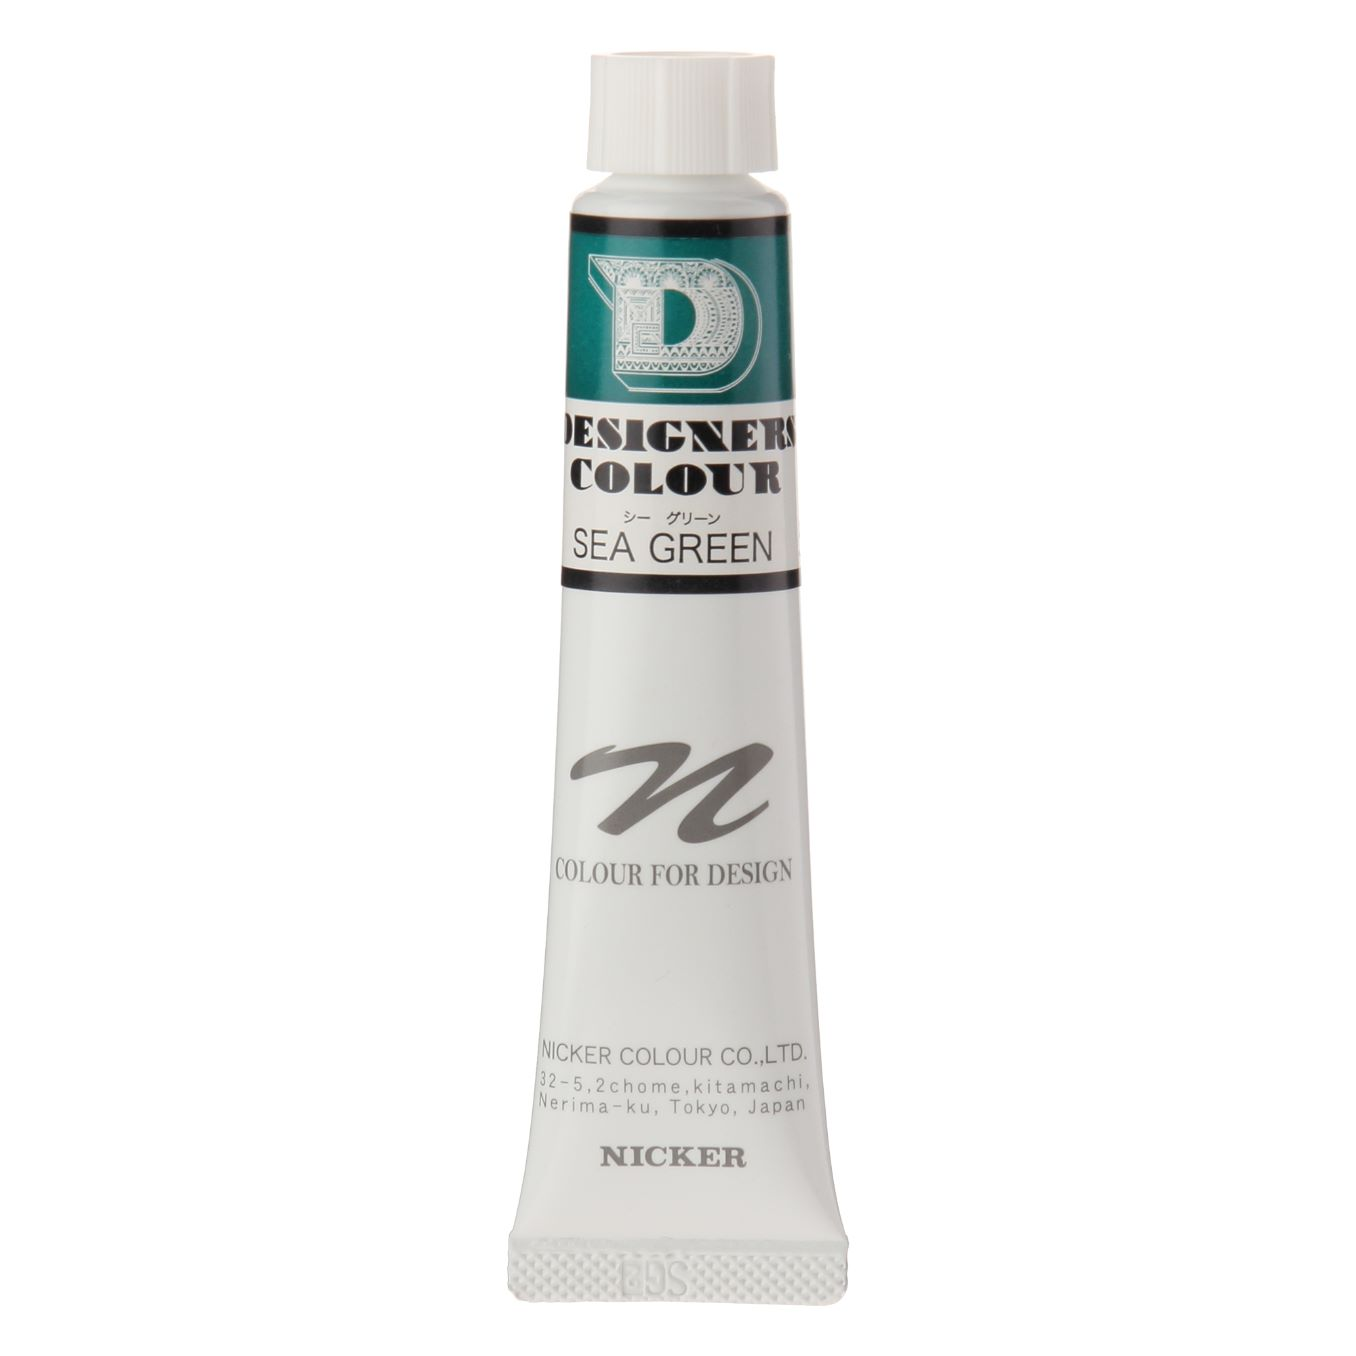 DESIGNERS COLOUR 20ml 545 SEA GREEN